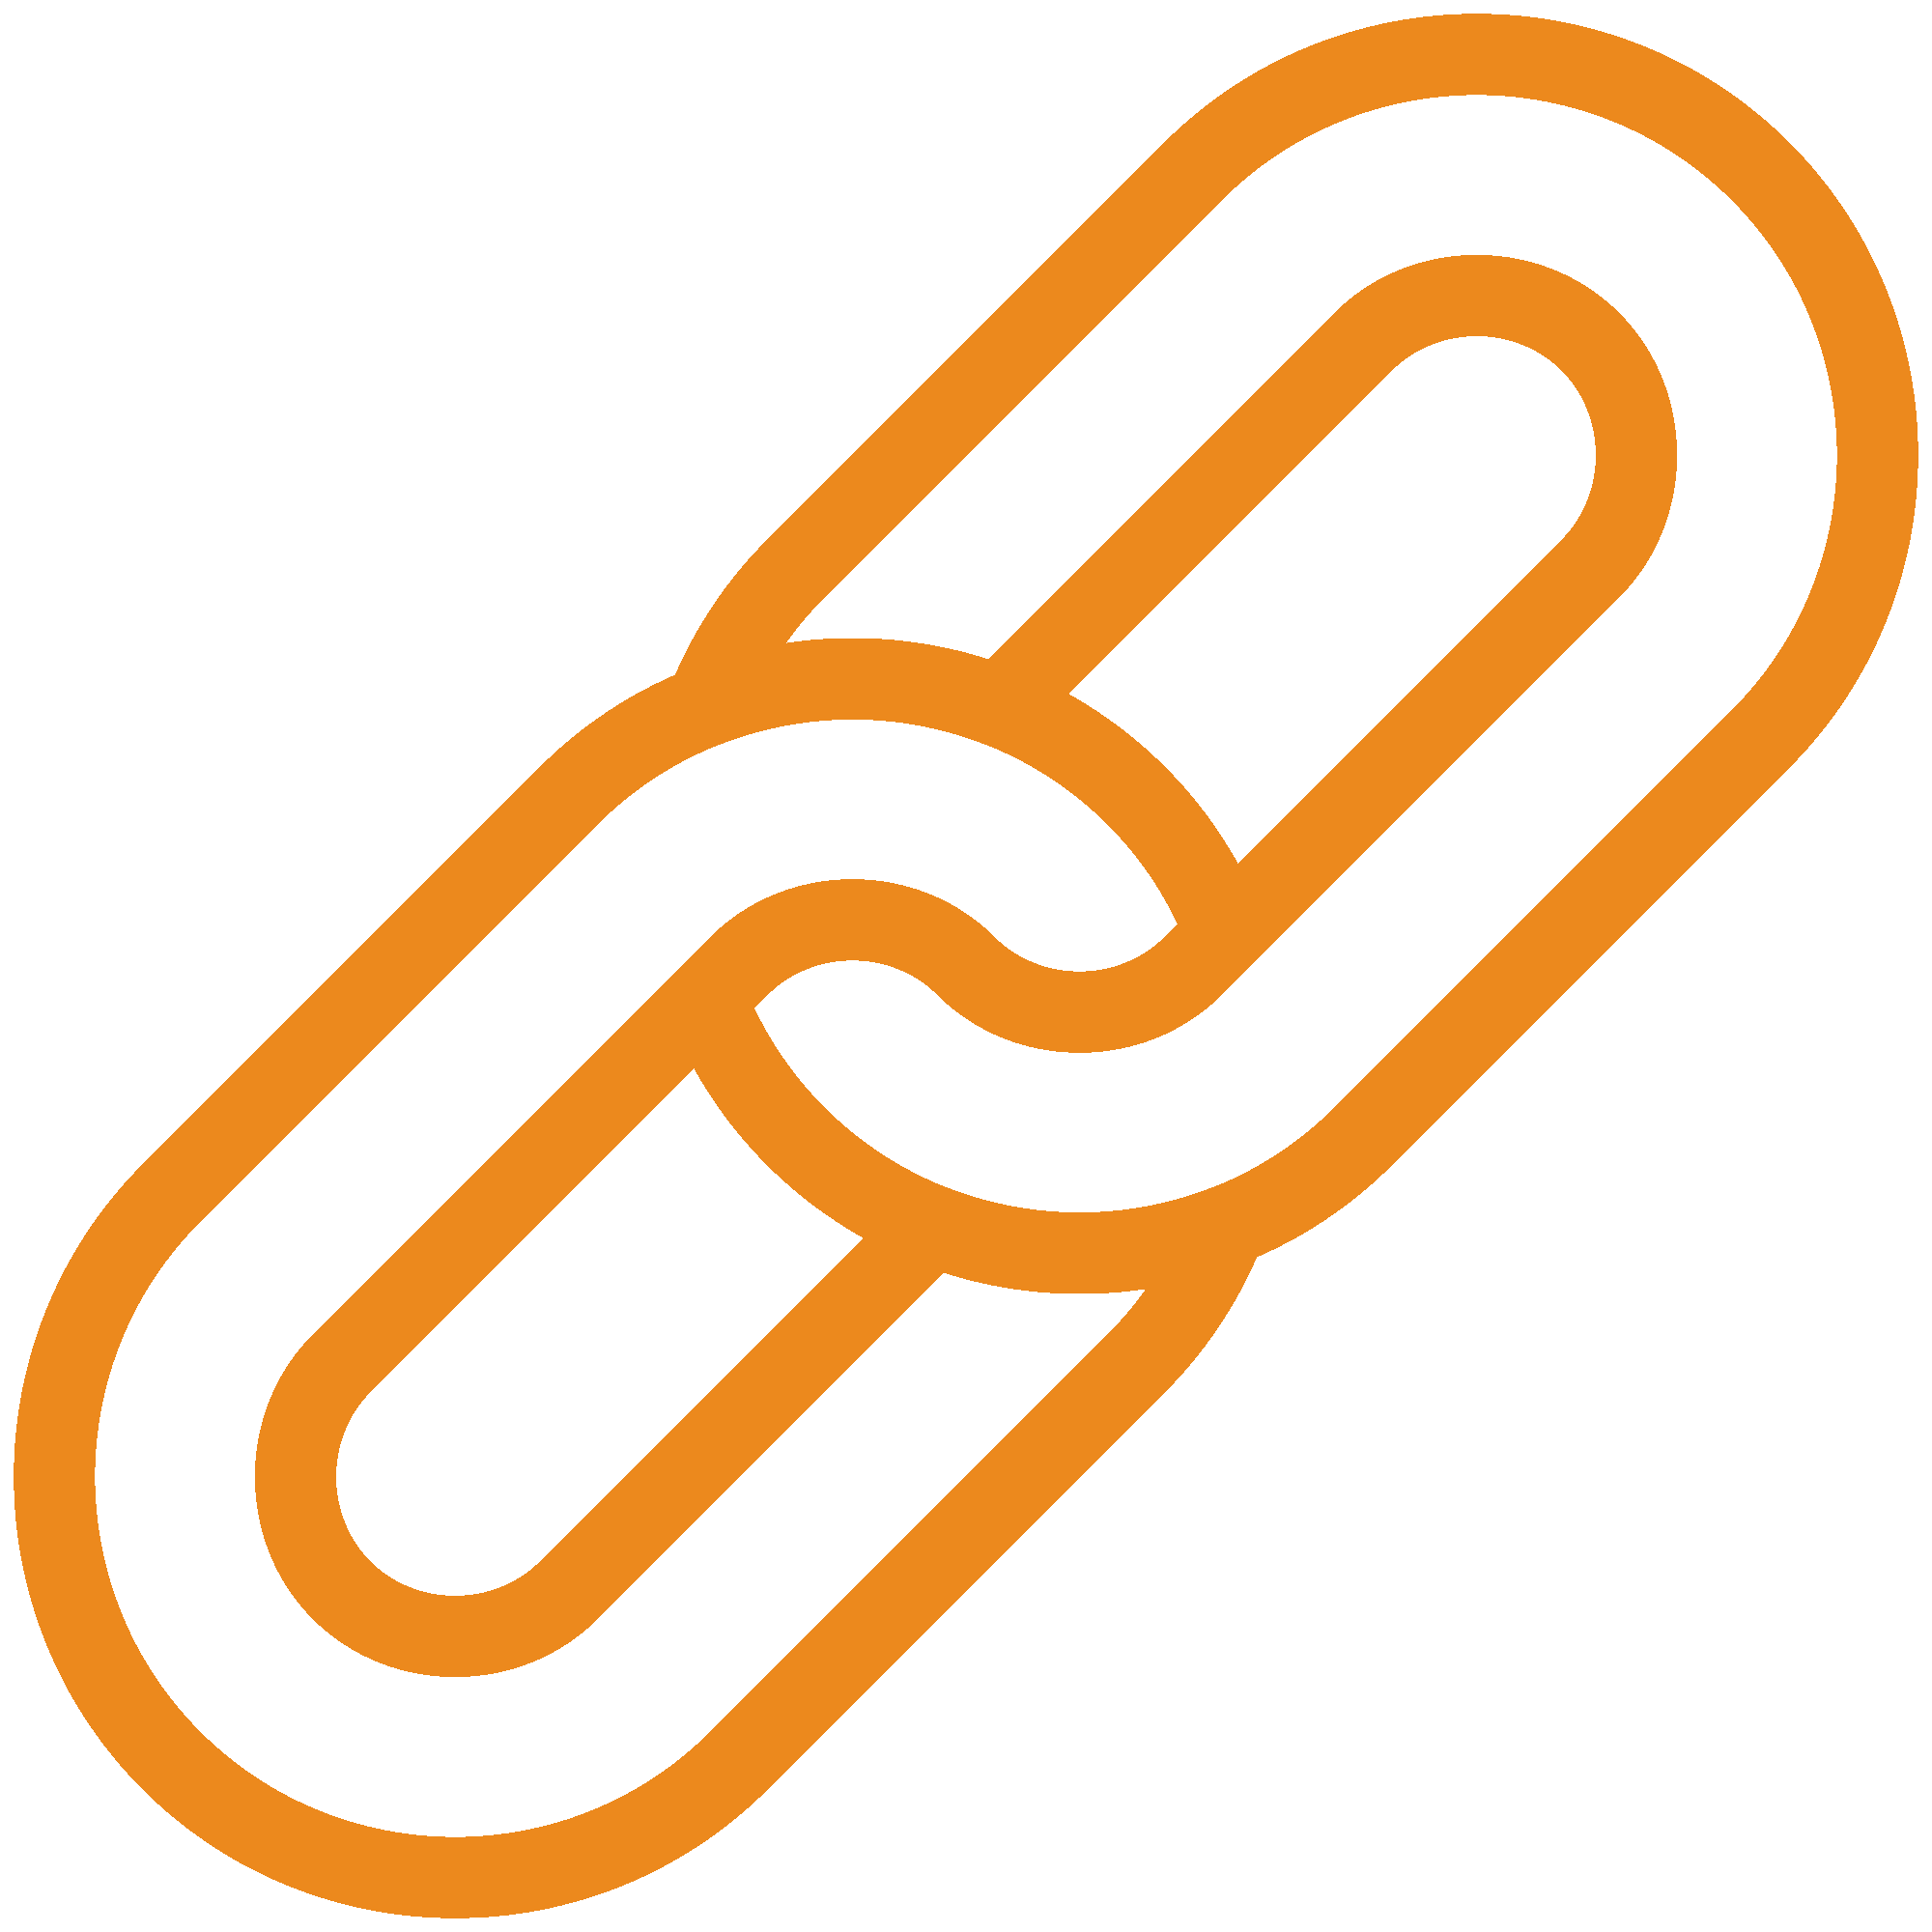 Two pieces of linked chain